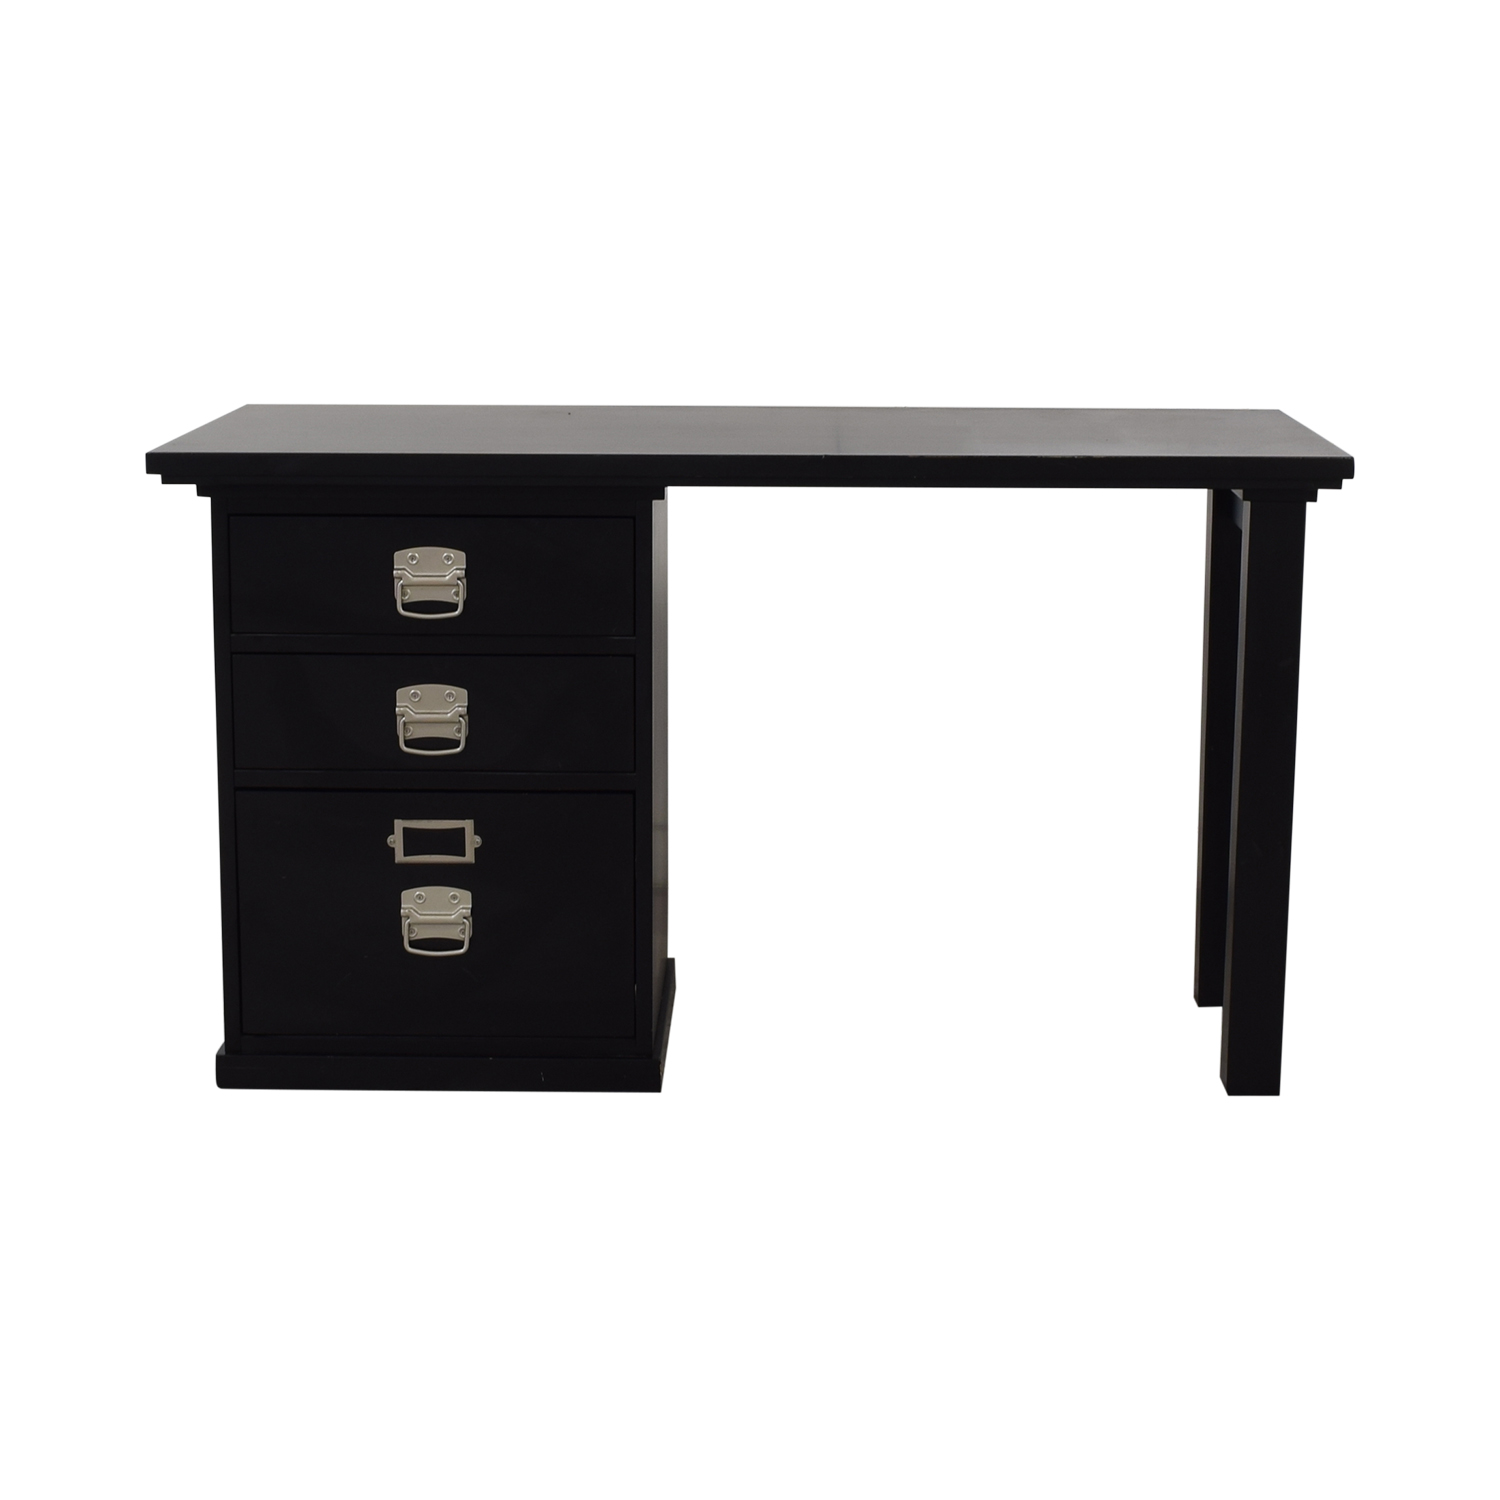 Pottery Barn Pottery Barn Bedford Three Drawer Small Desk price